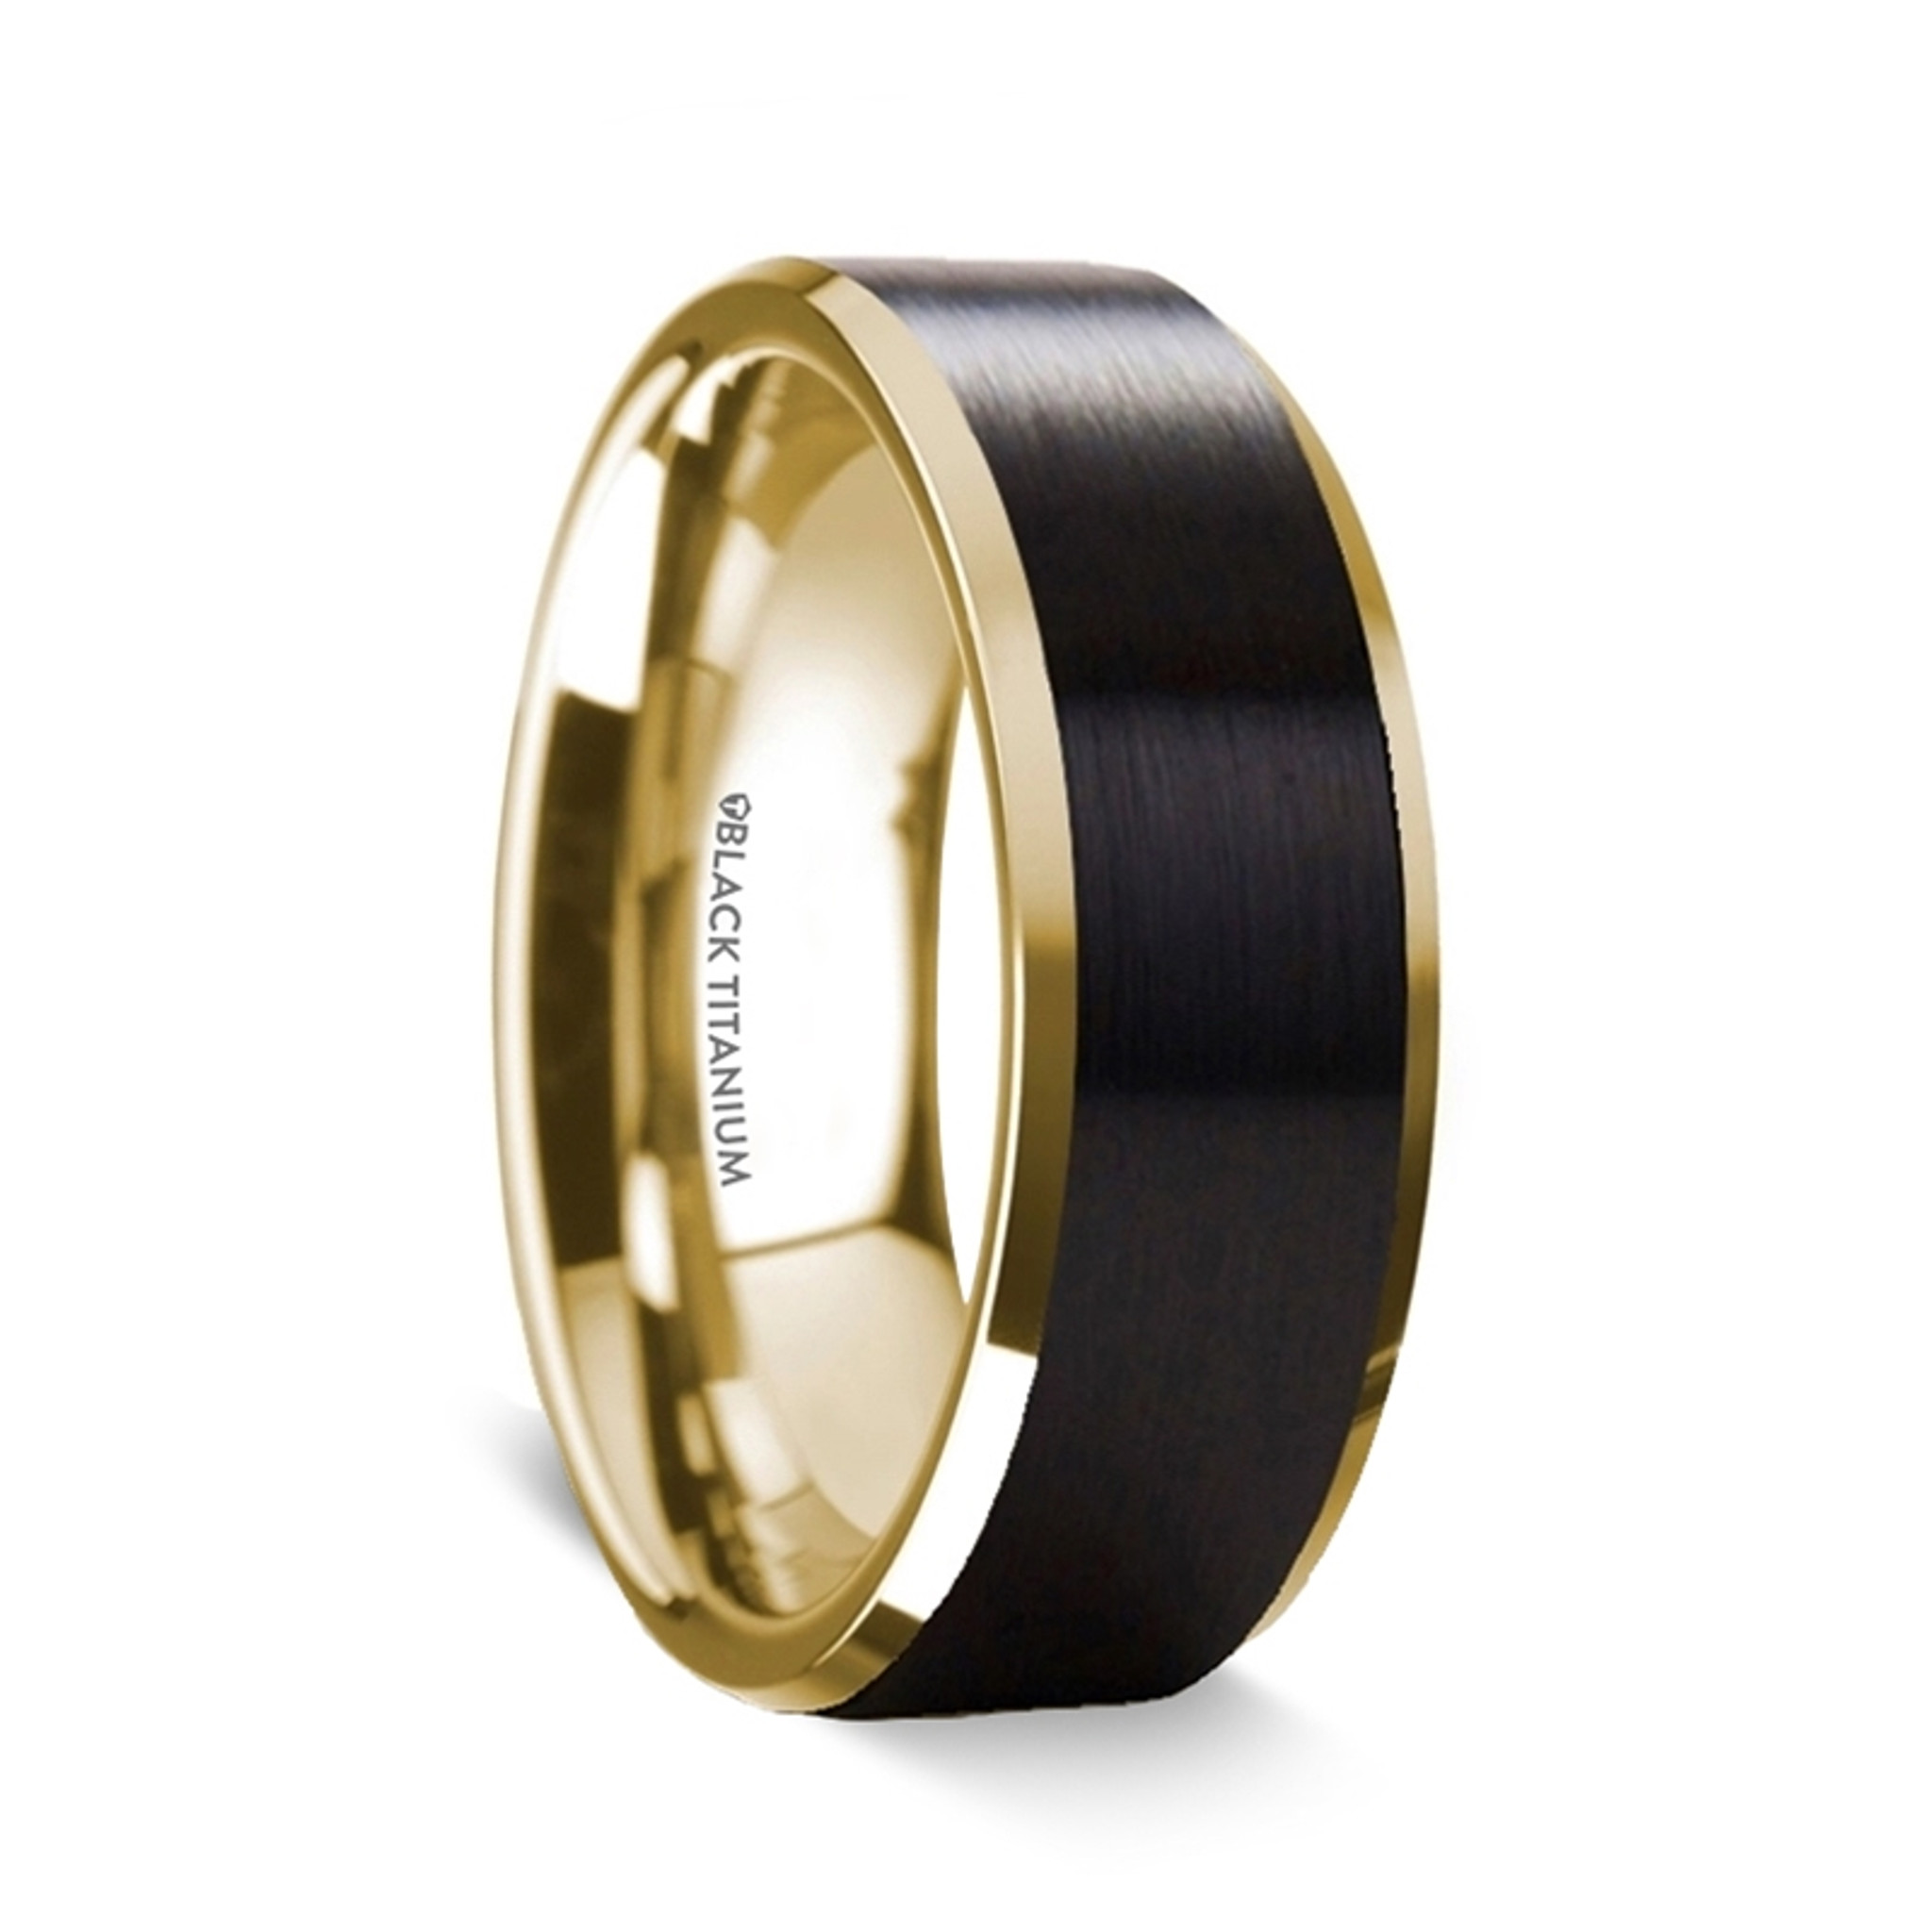 Aeolus Gold Plated Black Titanium Ring with Brushed Center from Vansweden Jewelers